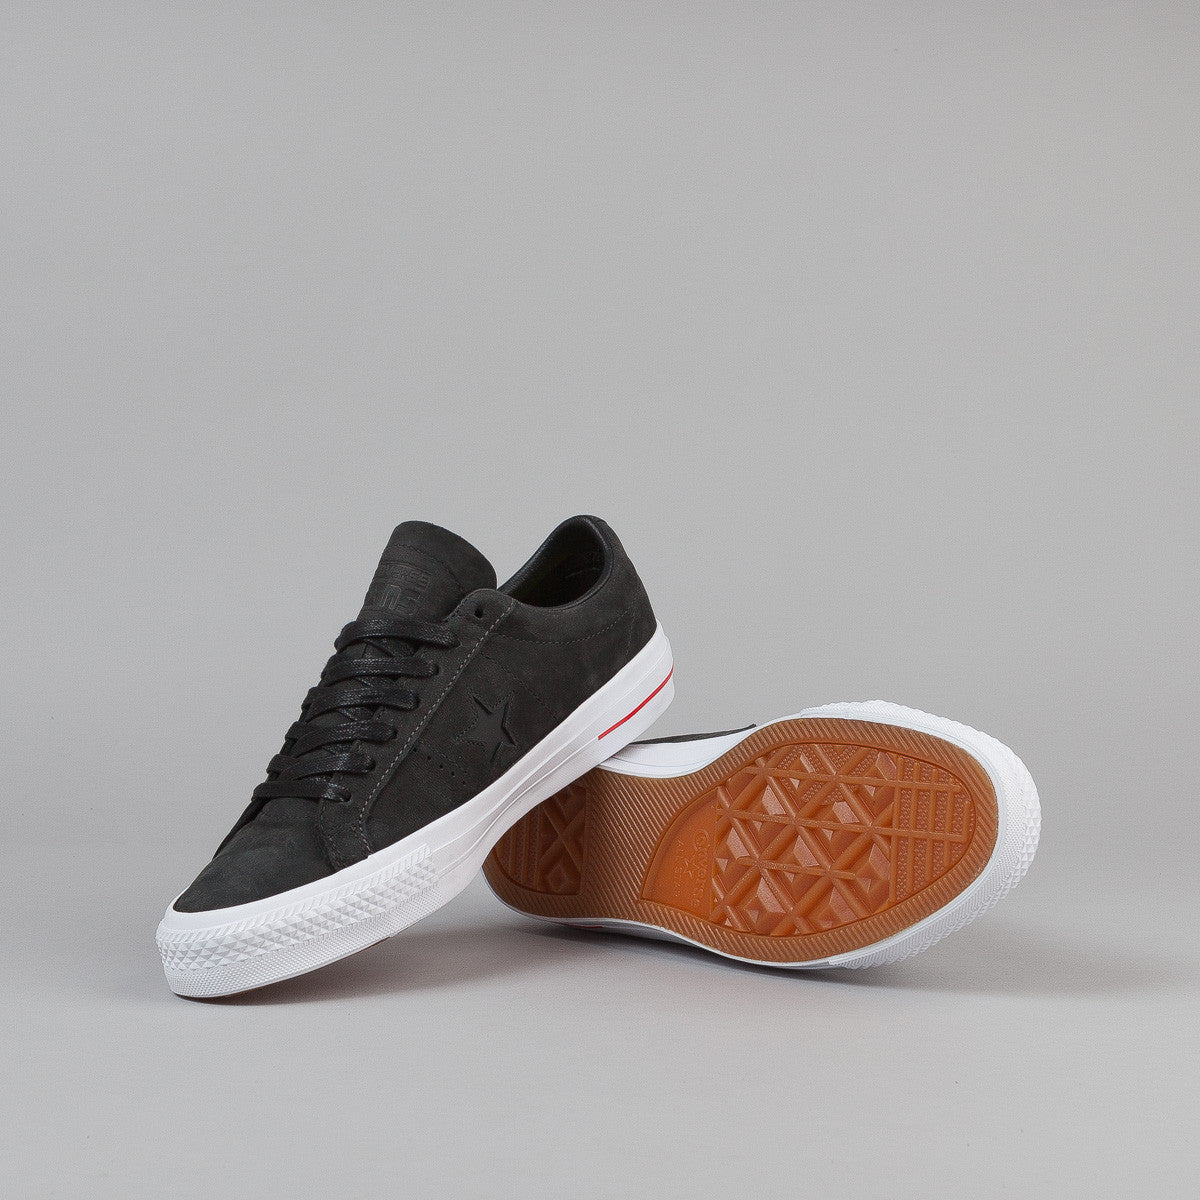 Converse One Star Pro Leather Shoes - Black